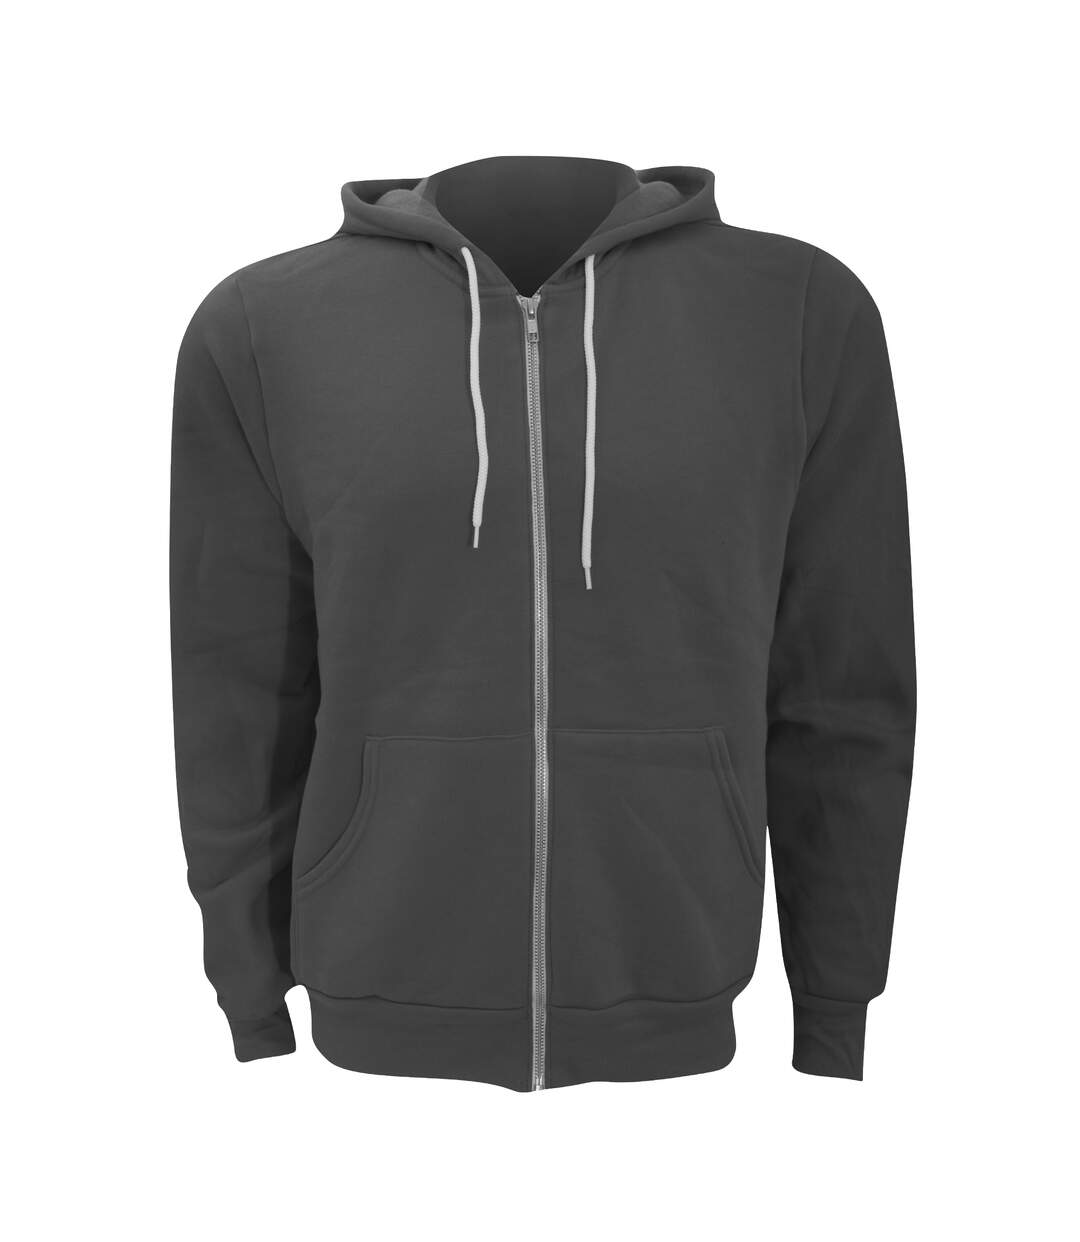 Canvas Unixex Zip-up Polycotton Fleece Hooded Sweatshirt / Hoodie (Asphalt) - UTBC1337